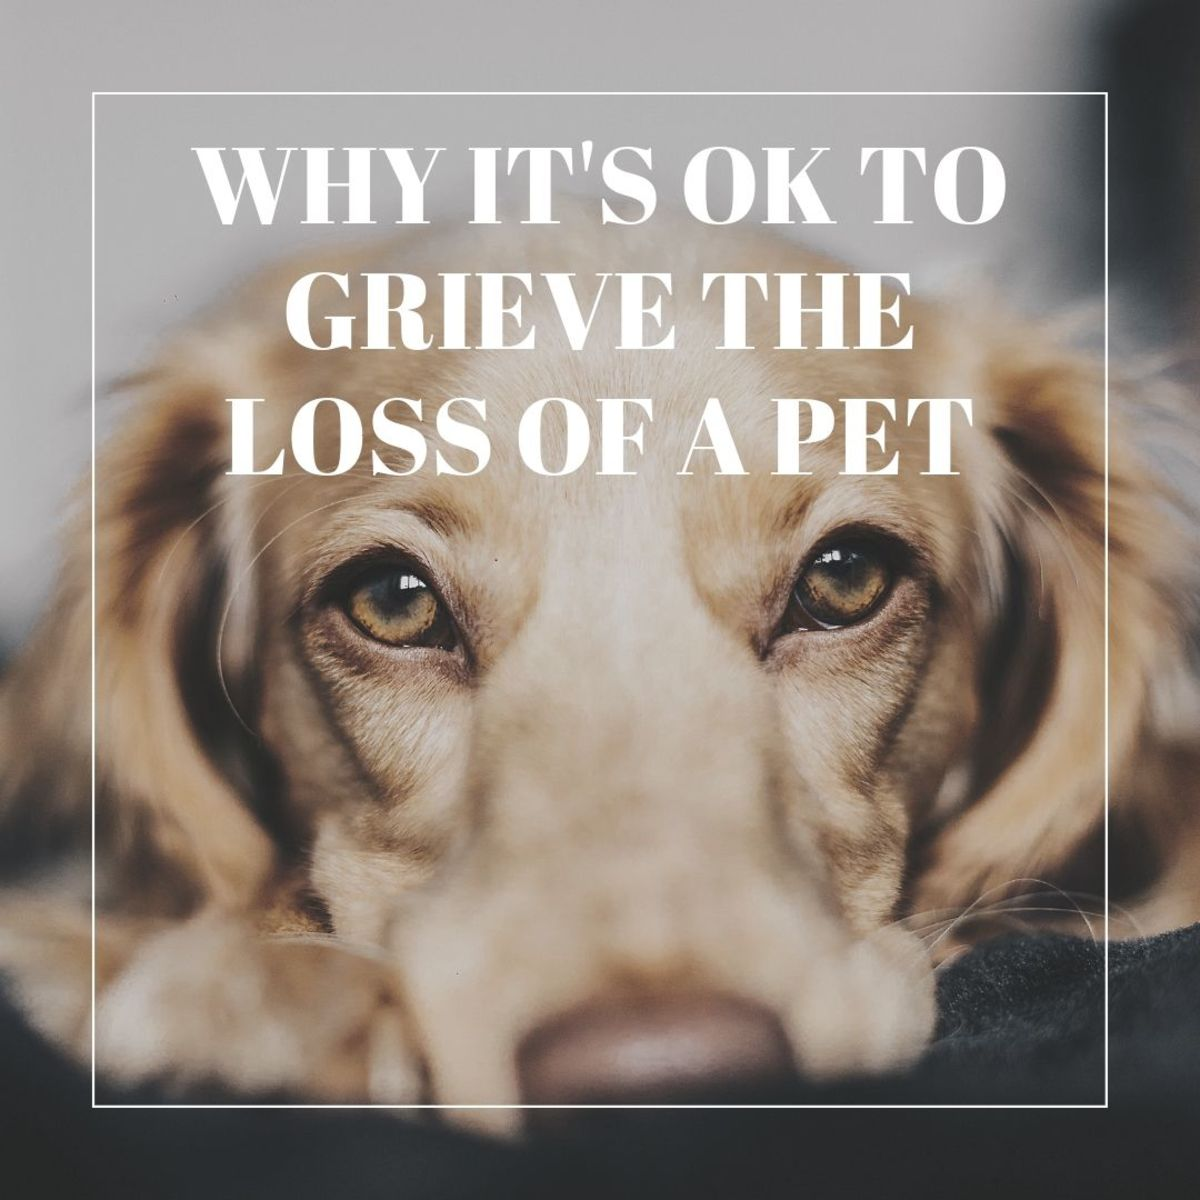 Don't let others bully you into feeling guilty about your grief over the loss of a beloved pet.